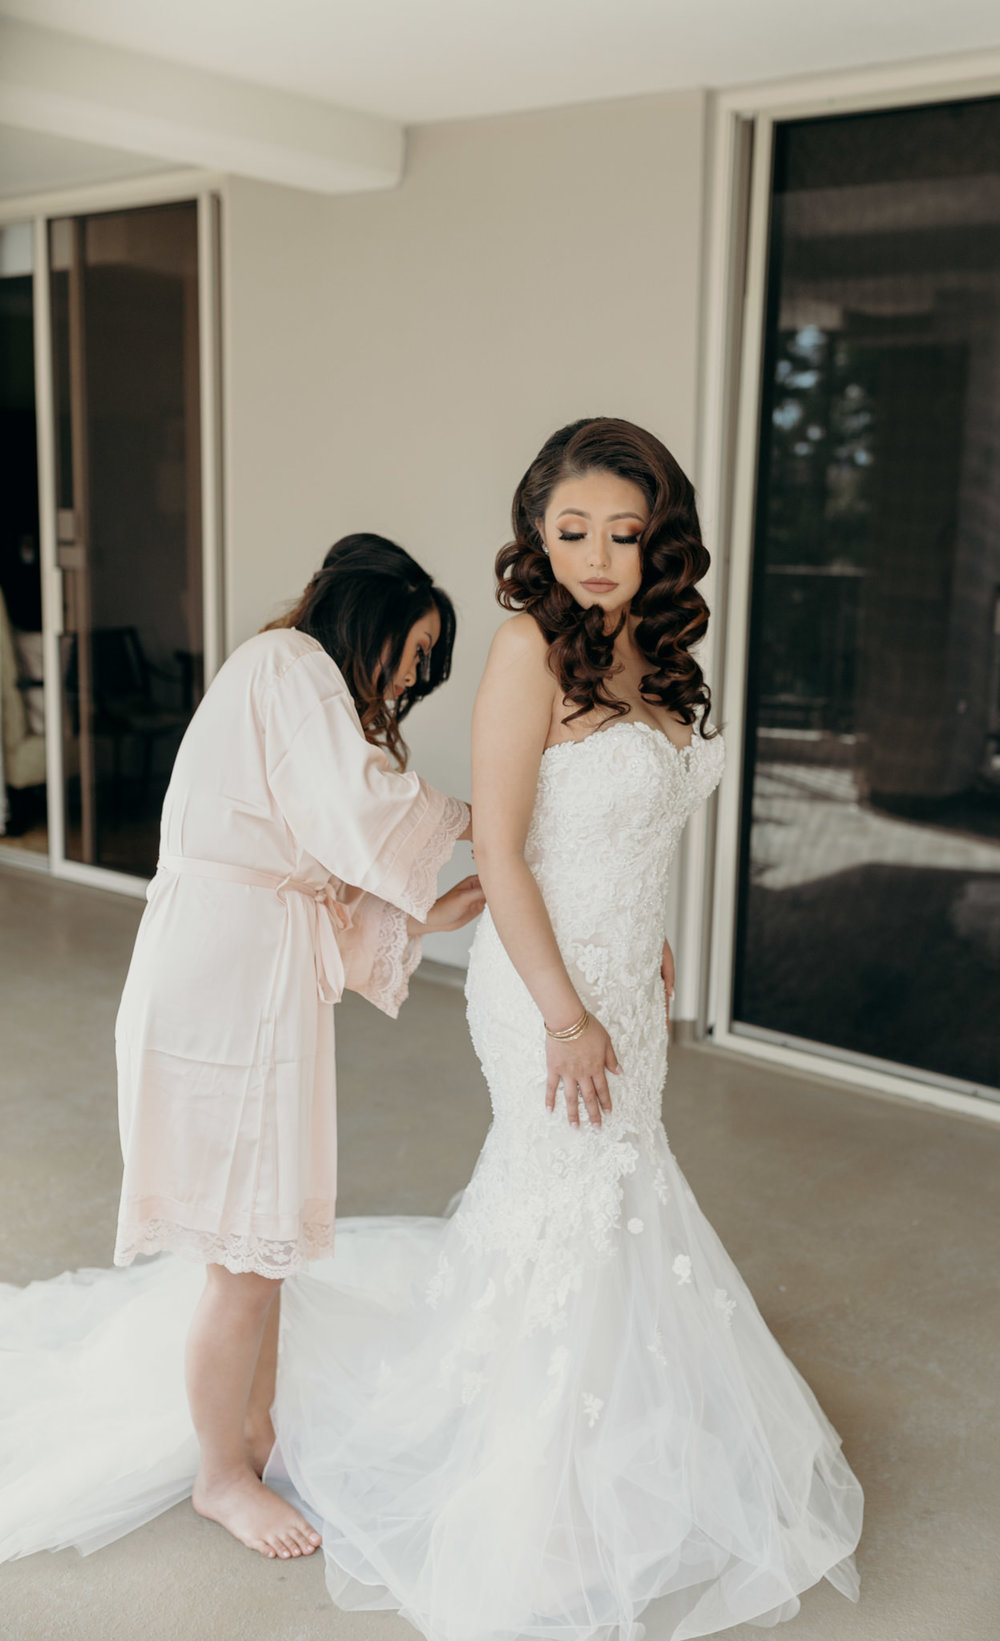 bride getting help into dress